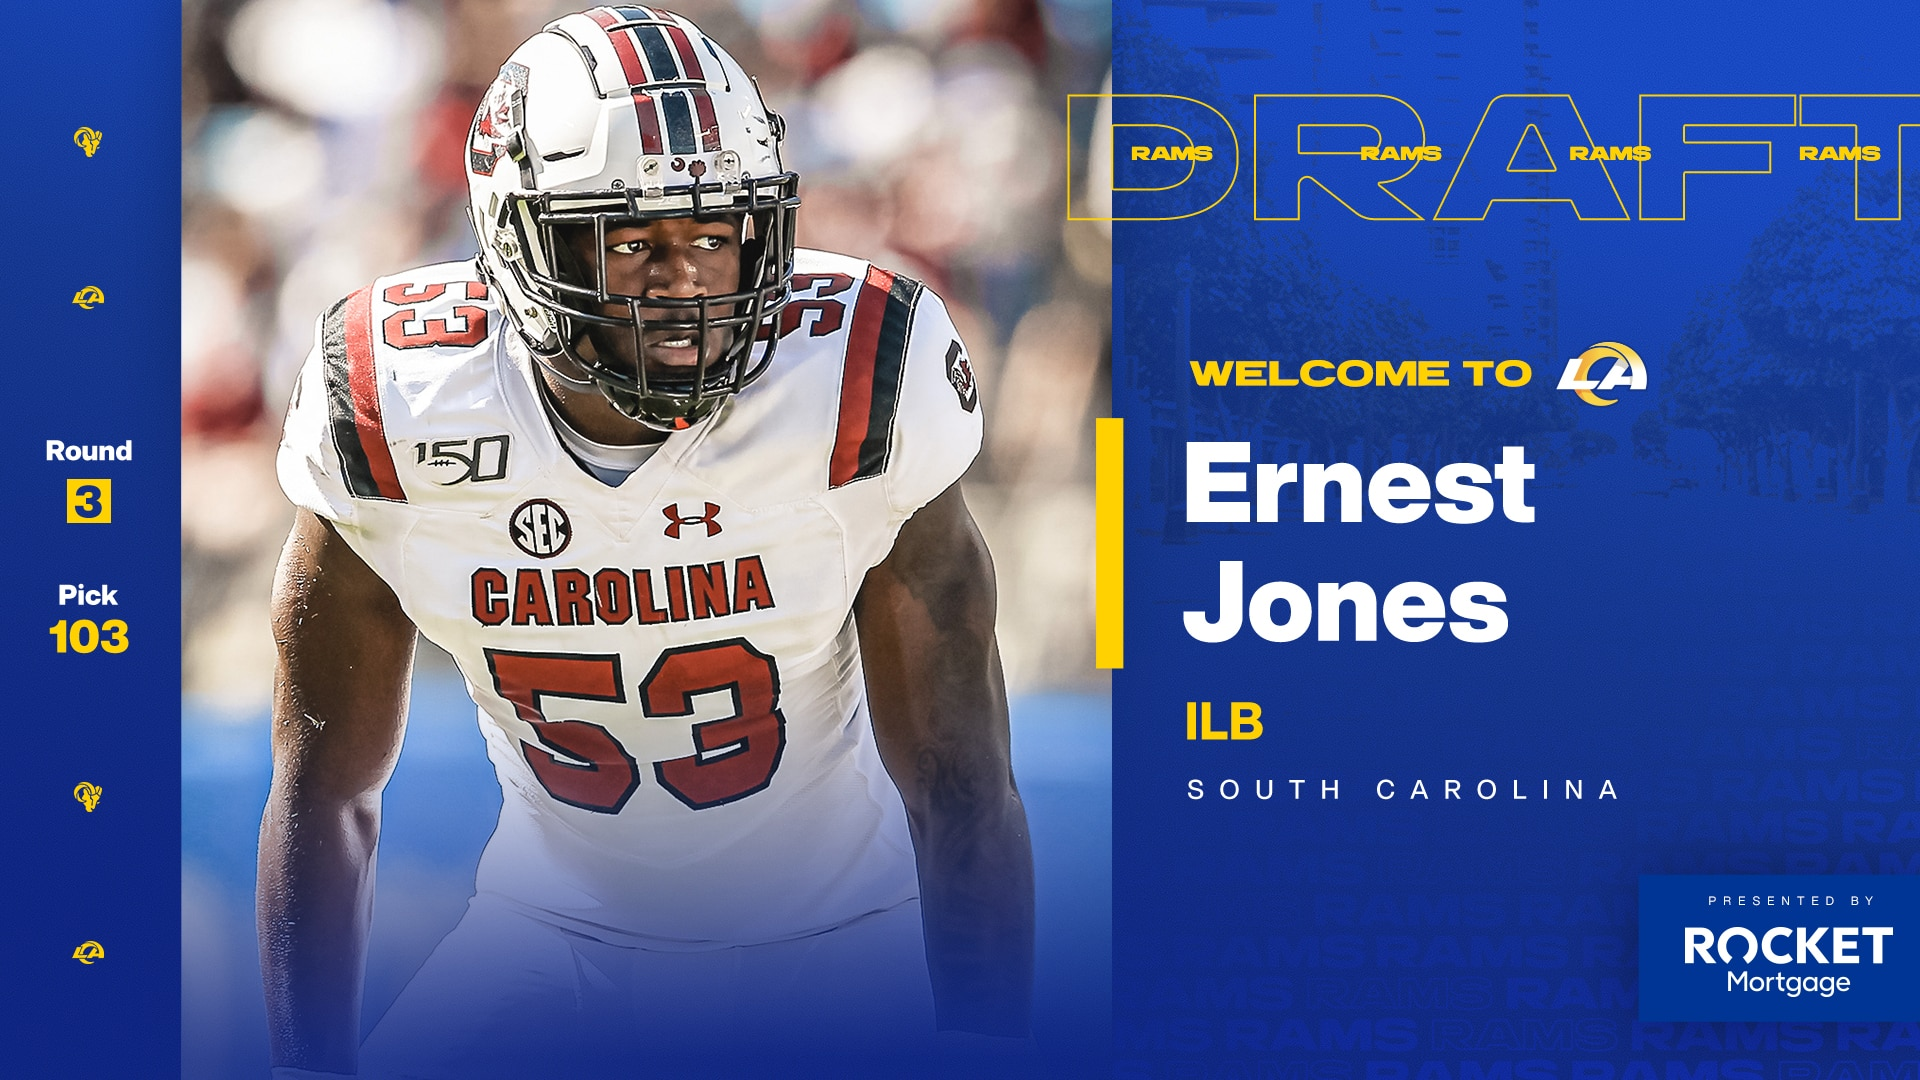 Is Ernest Jones The Right Linebacker For The Rams?